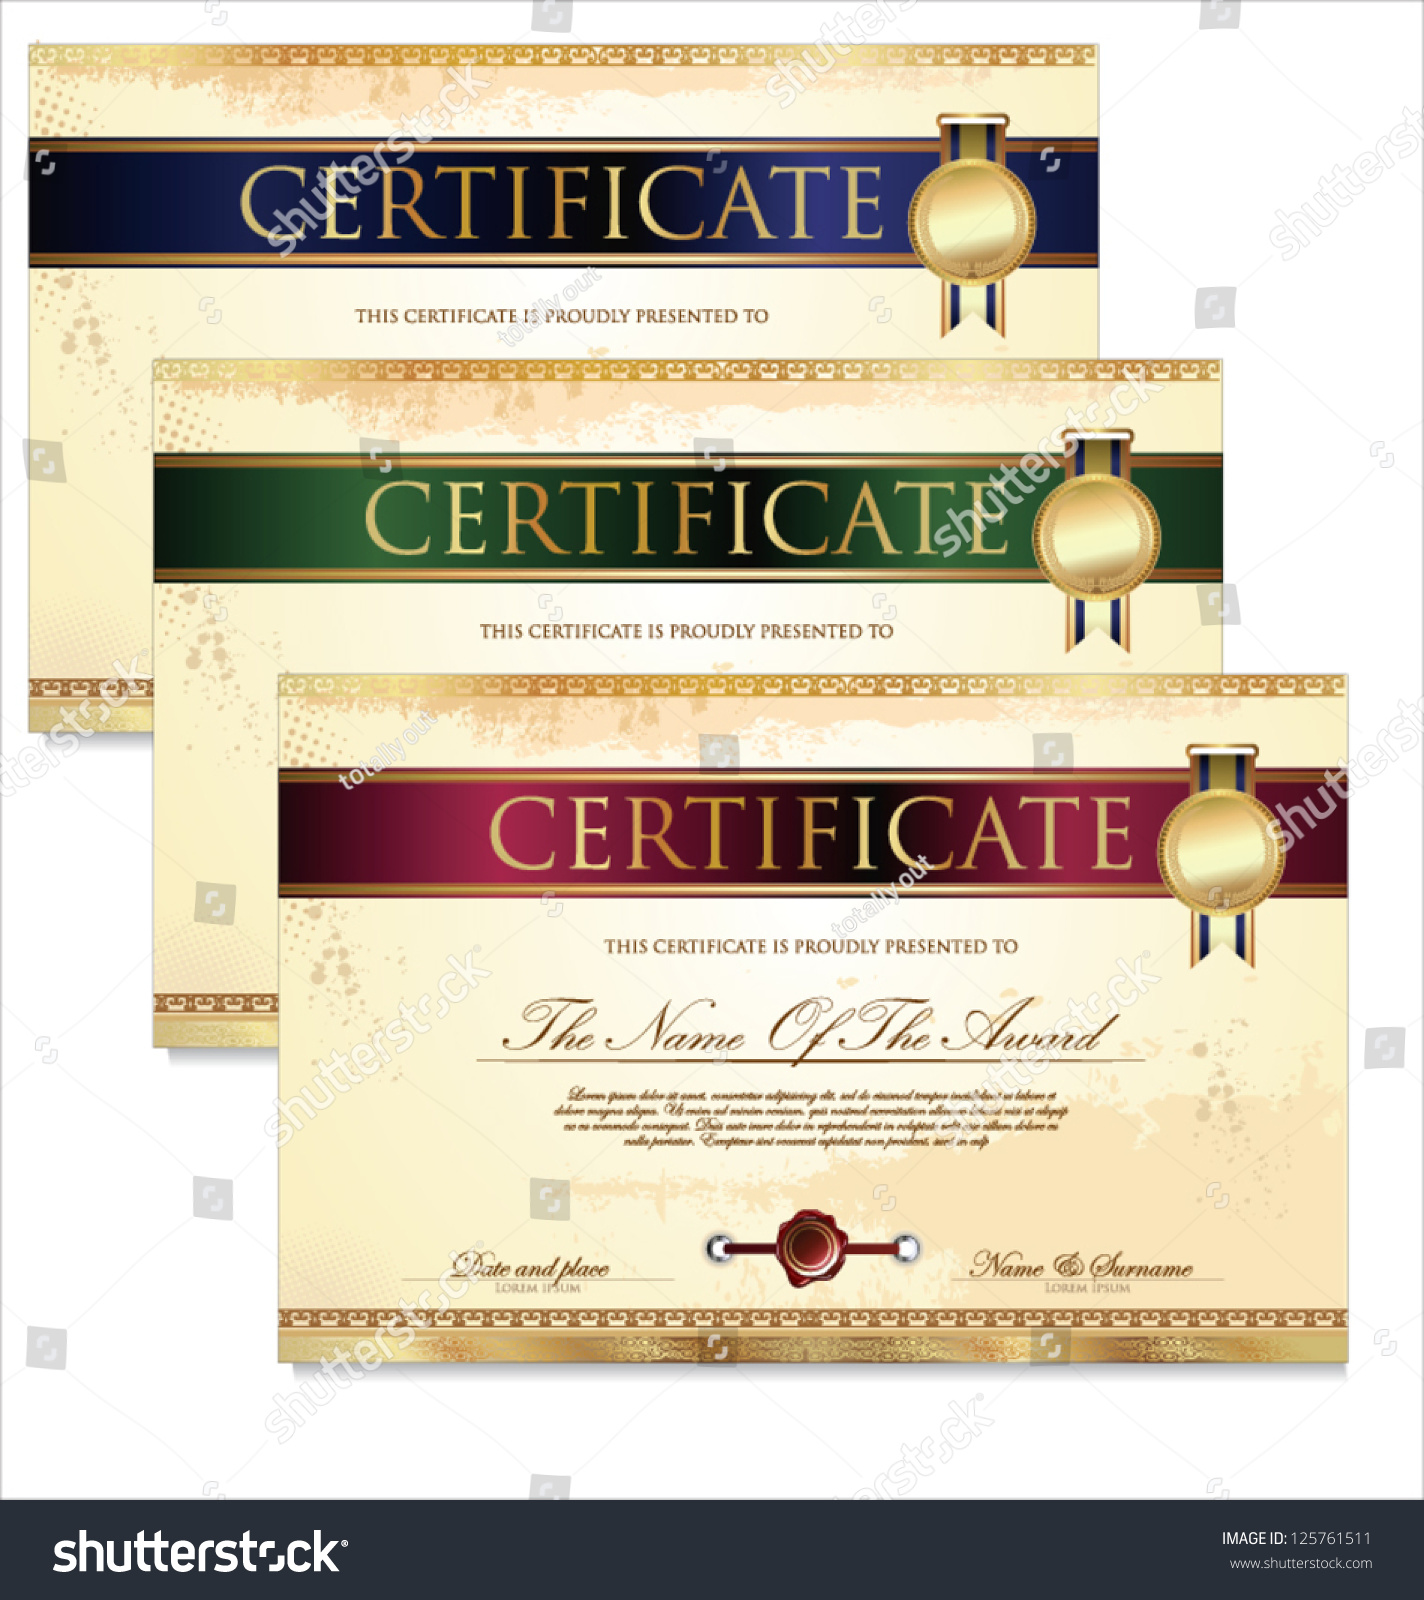 Employee Month Certificate Template Free Entrepreneur Business – Employee of the Month Certificate Template Free